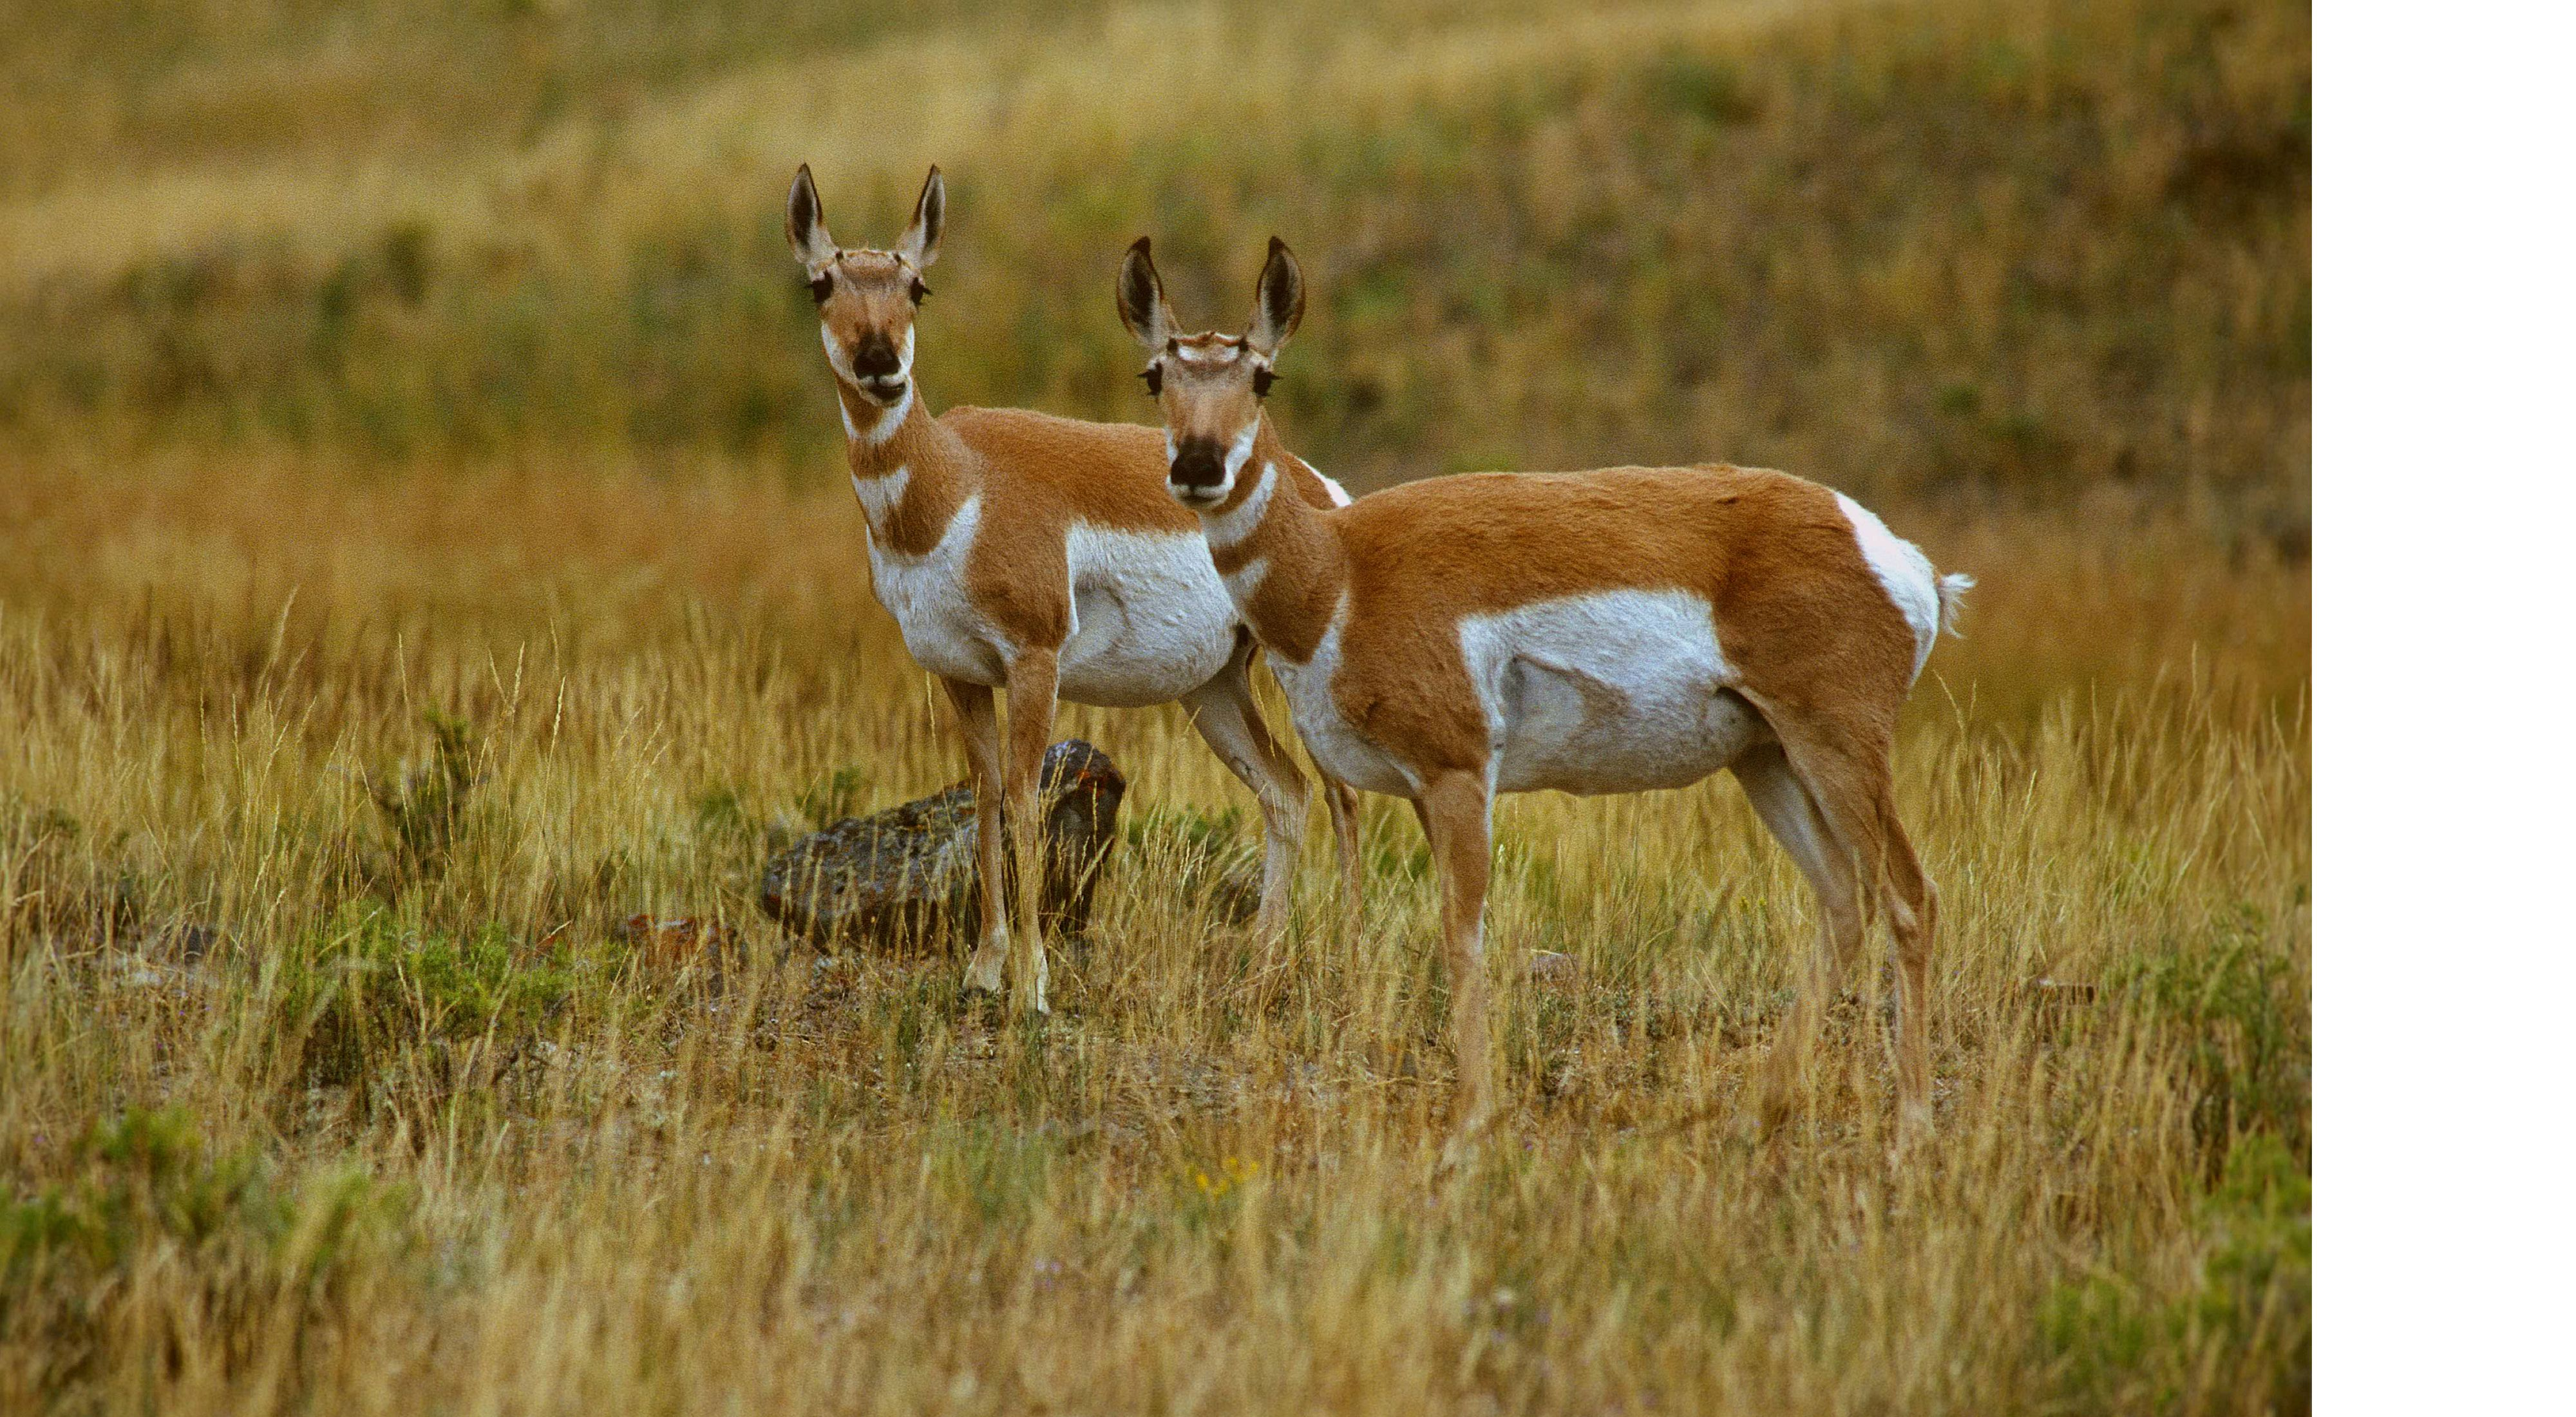 is the most characteristic large mammal of the Great Plains and also the fastest mammal in North America.  This pair was photographed in Wyoming.